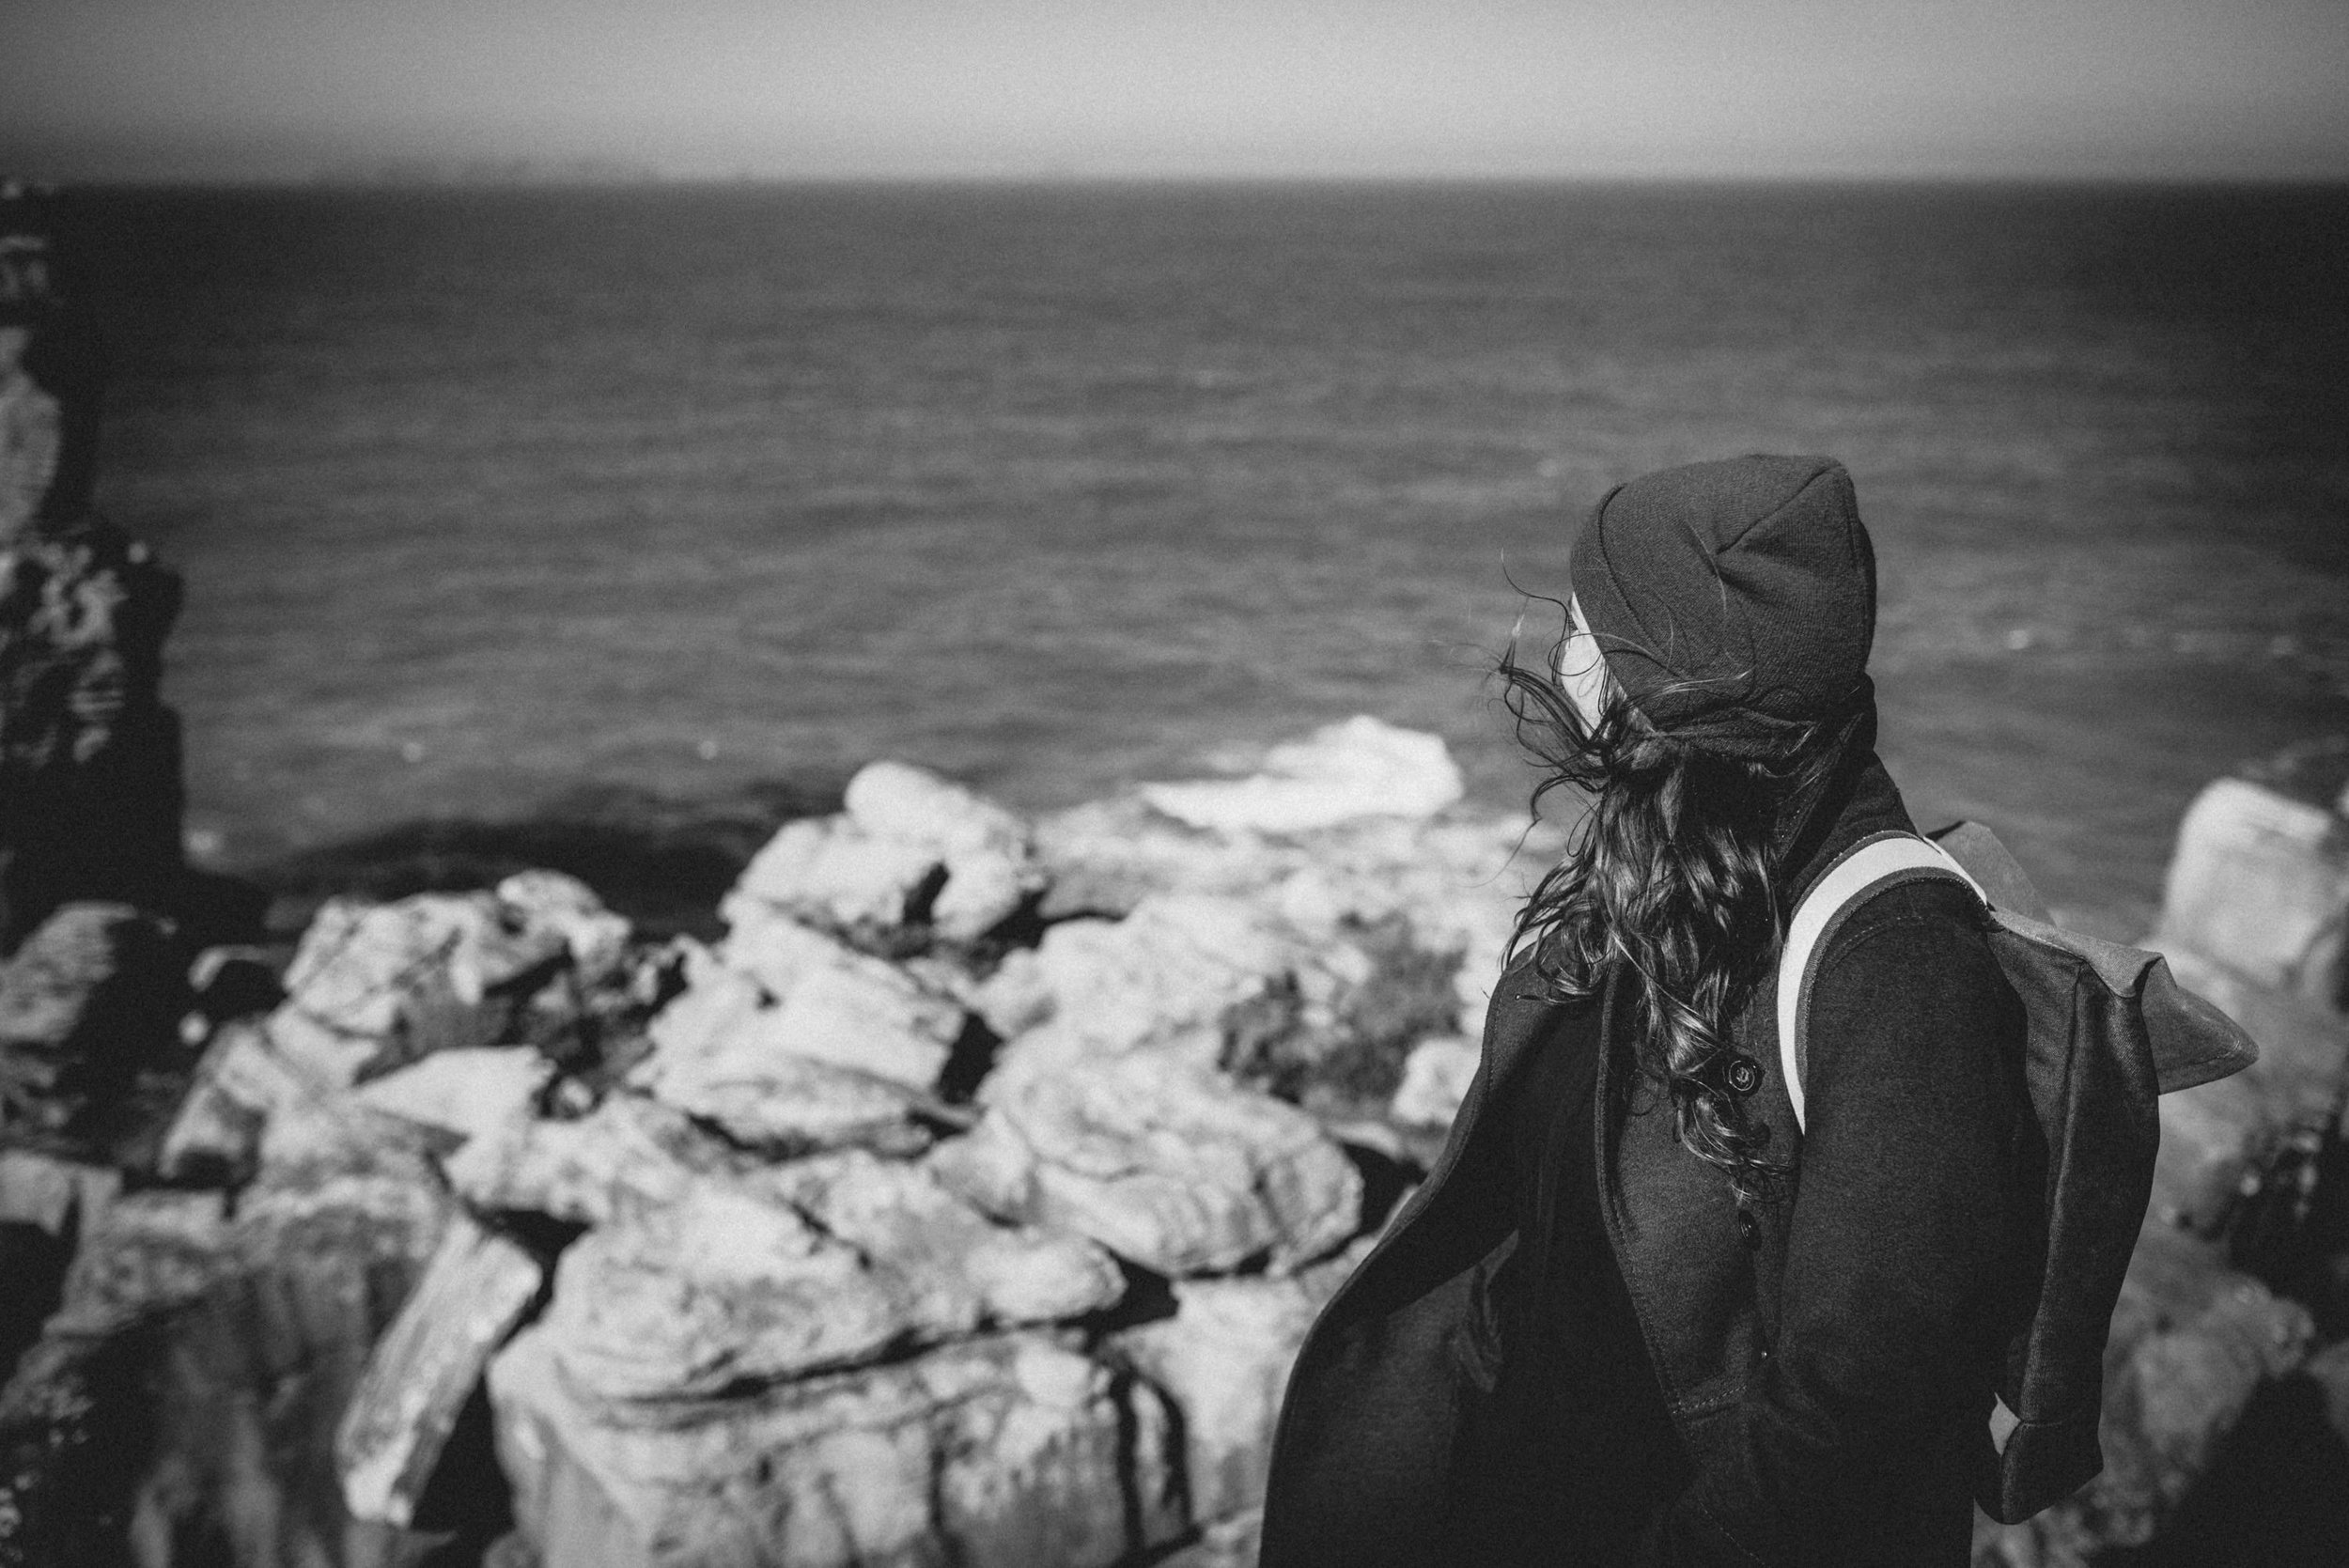 Portugal-Miss Freckles Photography-14.jpg